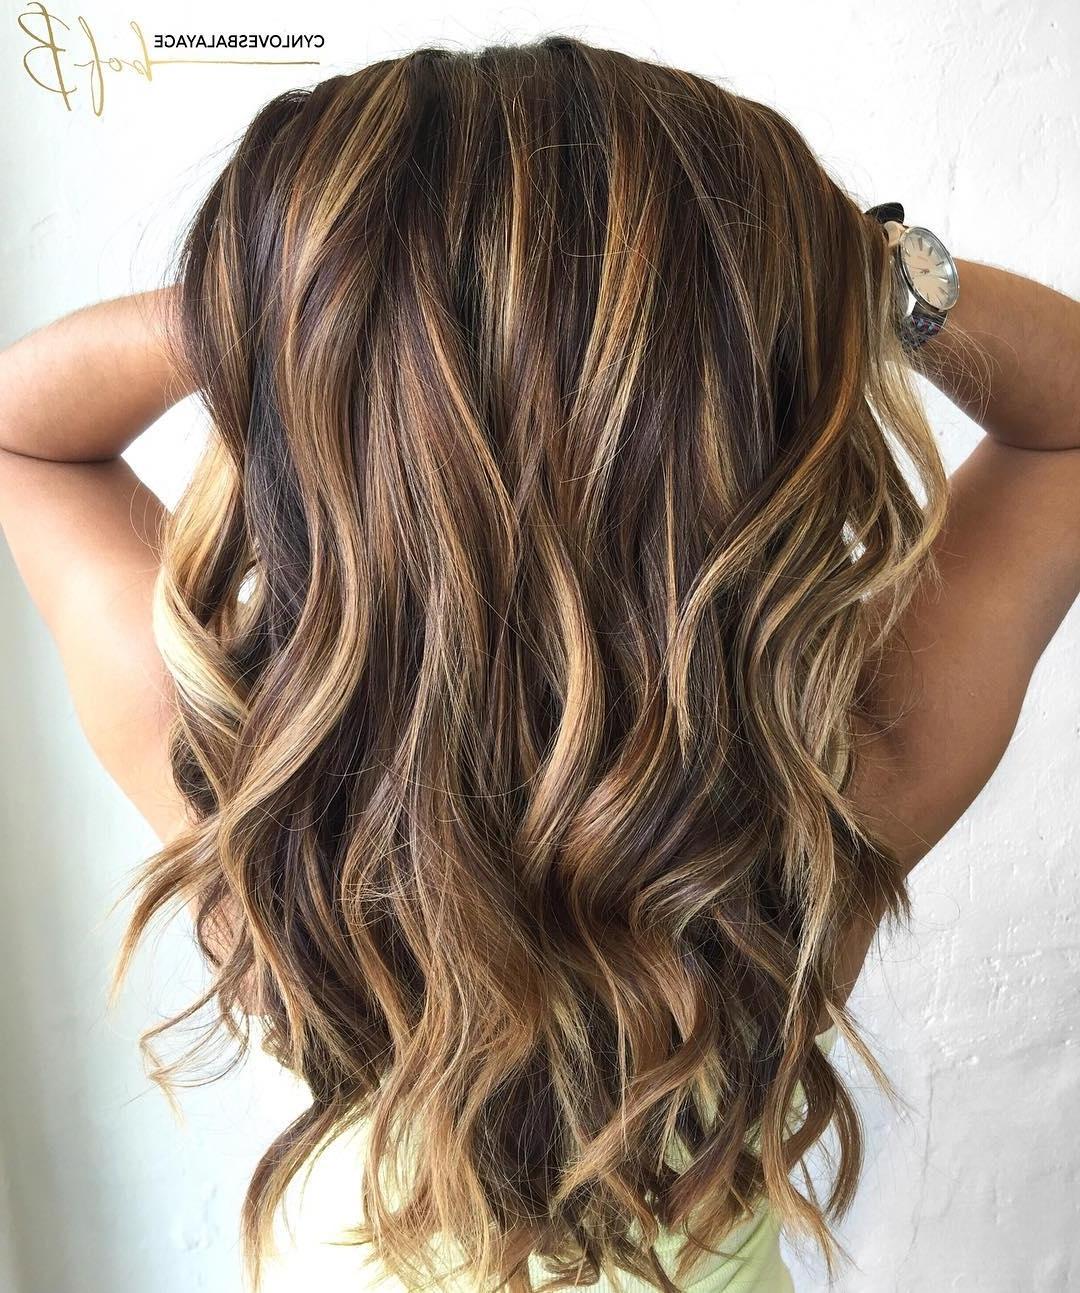 60 Looks With Caramel Highlights On Brown And Dark Brown Hair Inside Best And Newest Rosewood Blonde Waves Hairstyles (View 3 of 20)